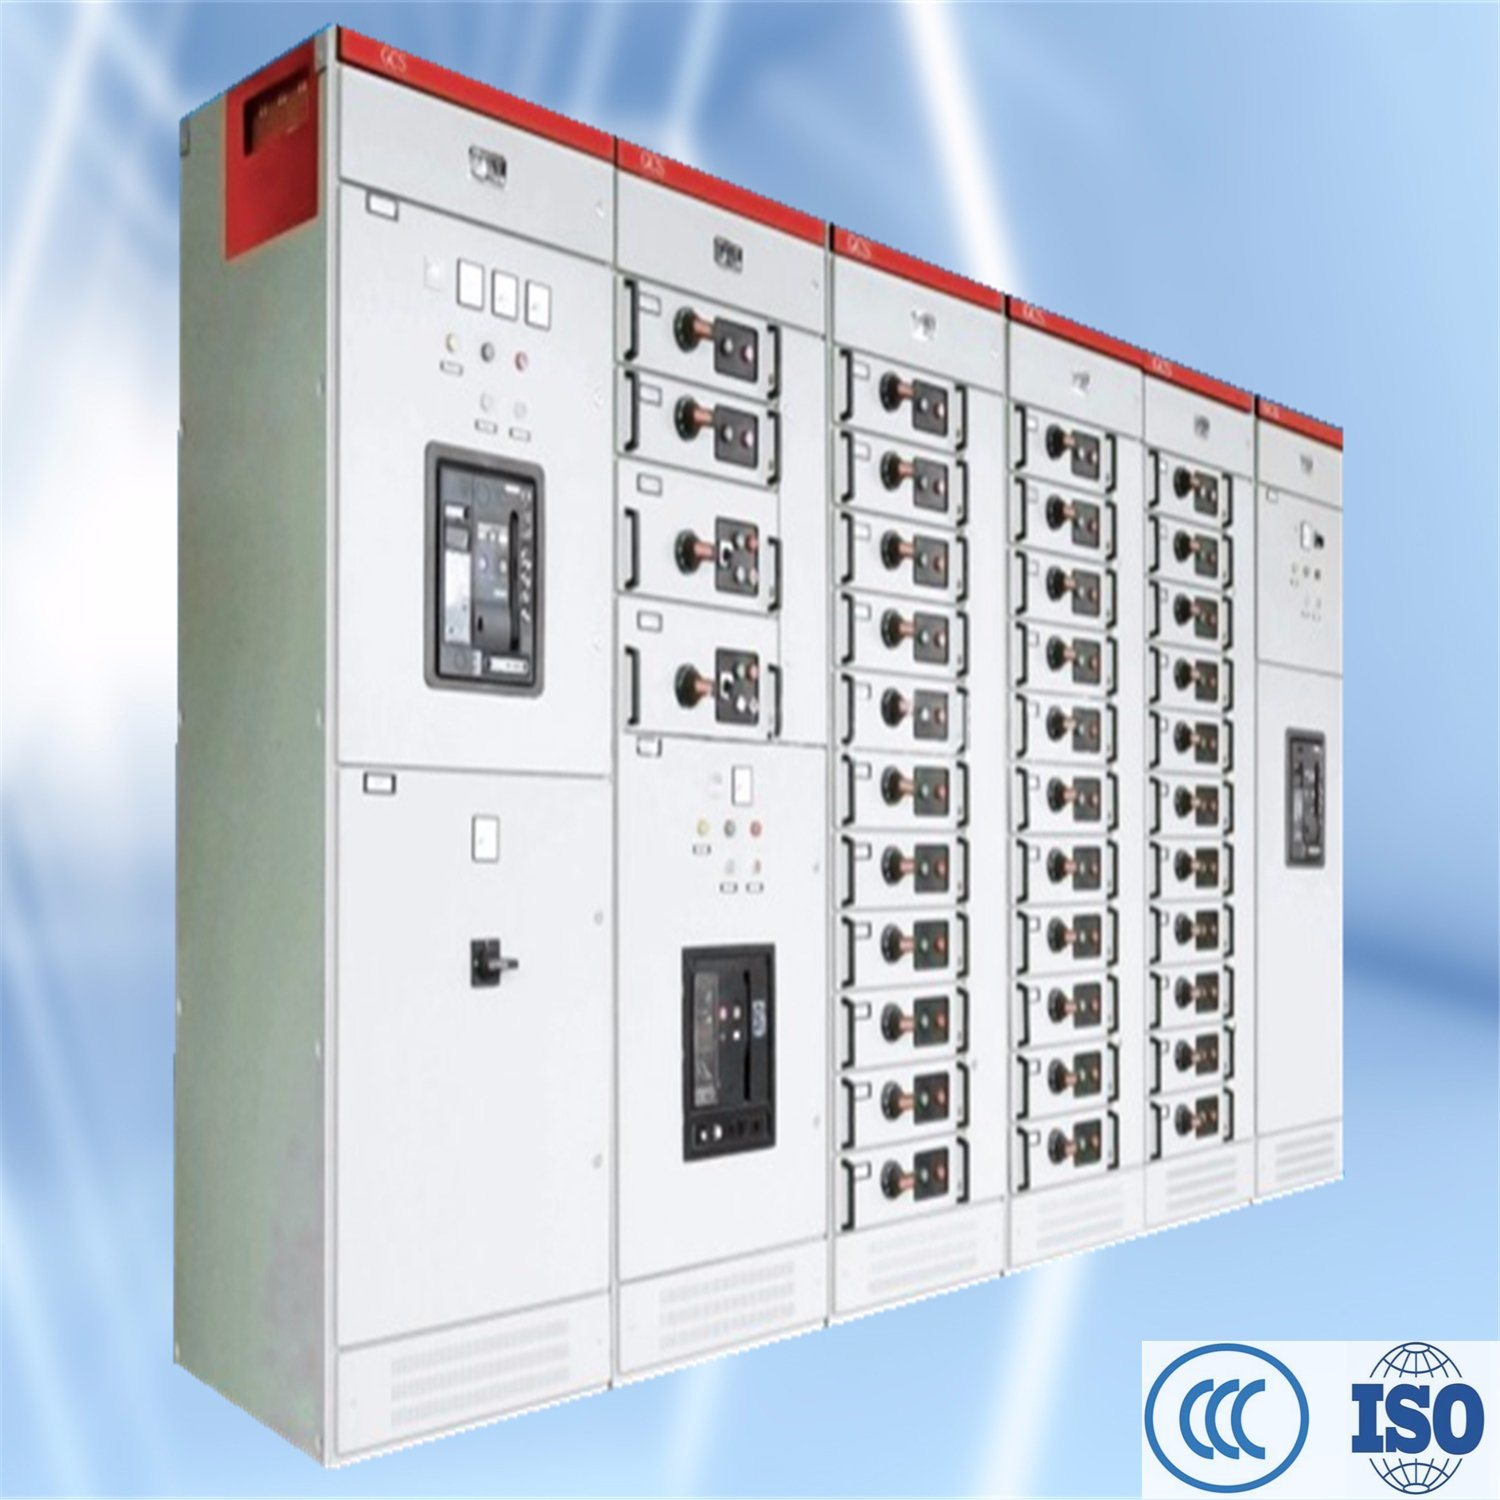 [Hot Item] Low Voltage Switchgear and Controlgear with ABB, Ge, Schneider, on